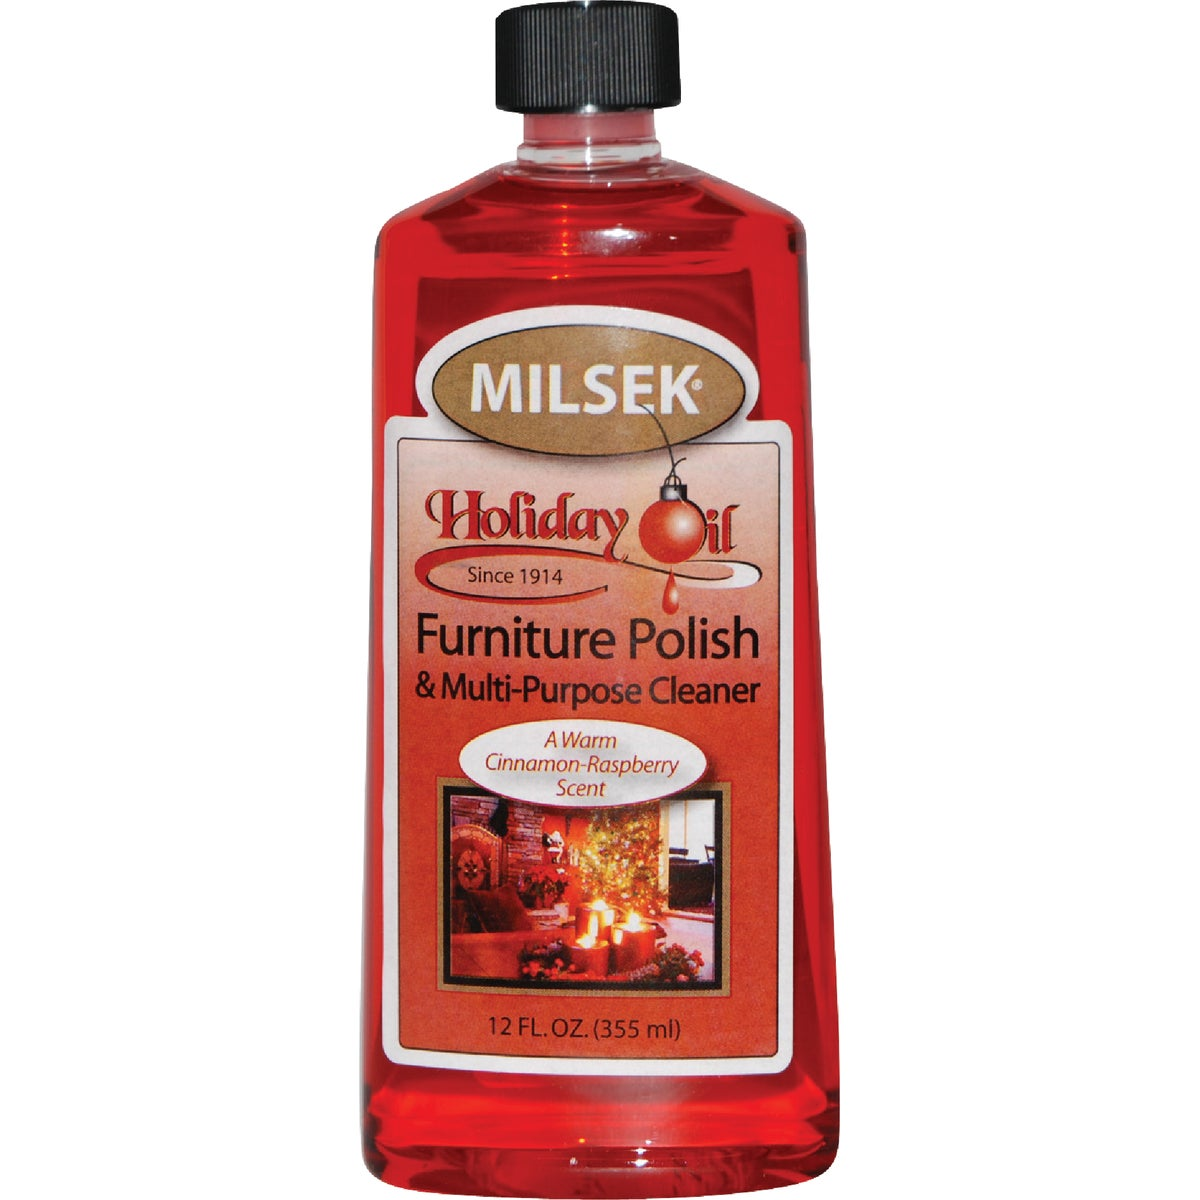 12OZ FURNITURE POLISH - 13590 by Milsek